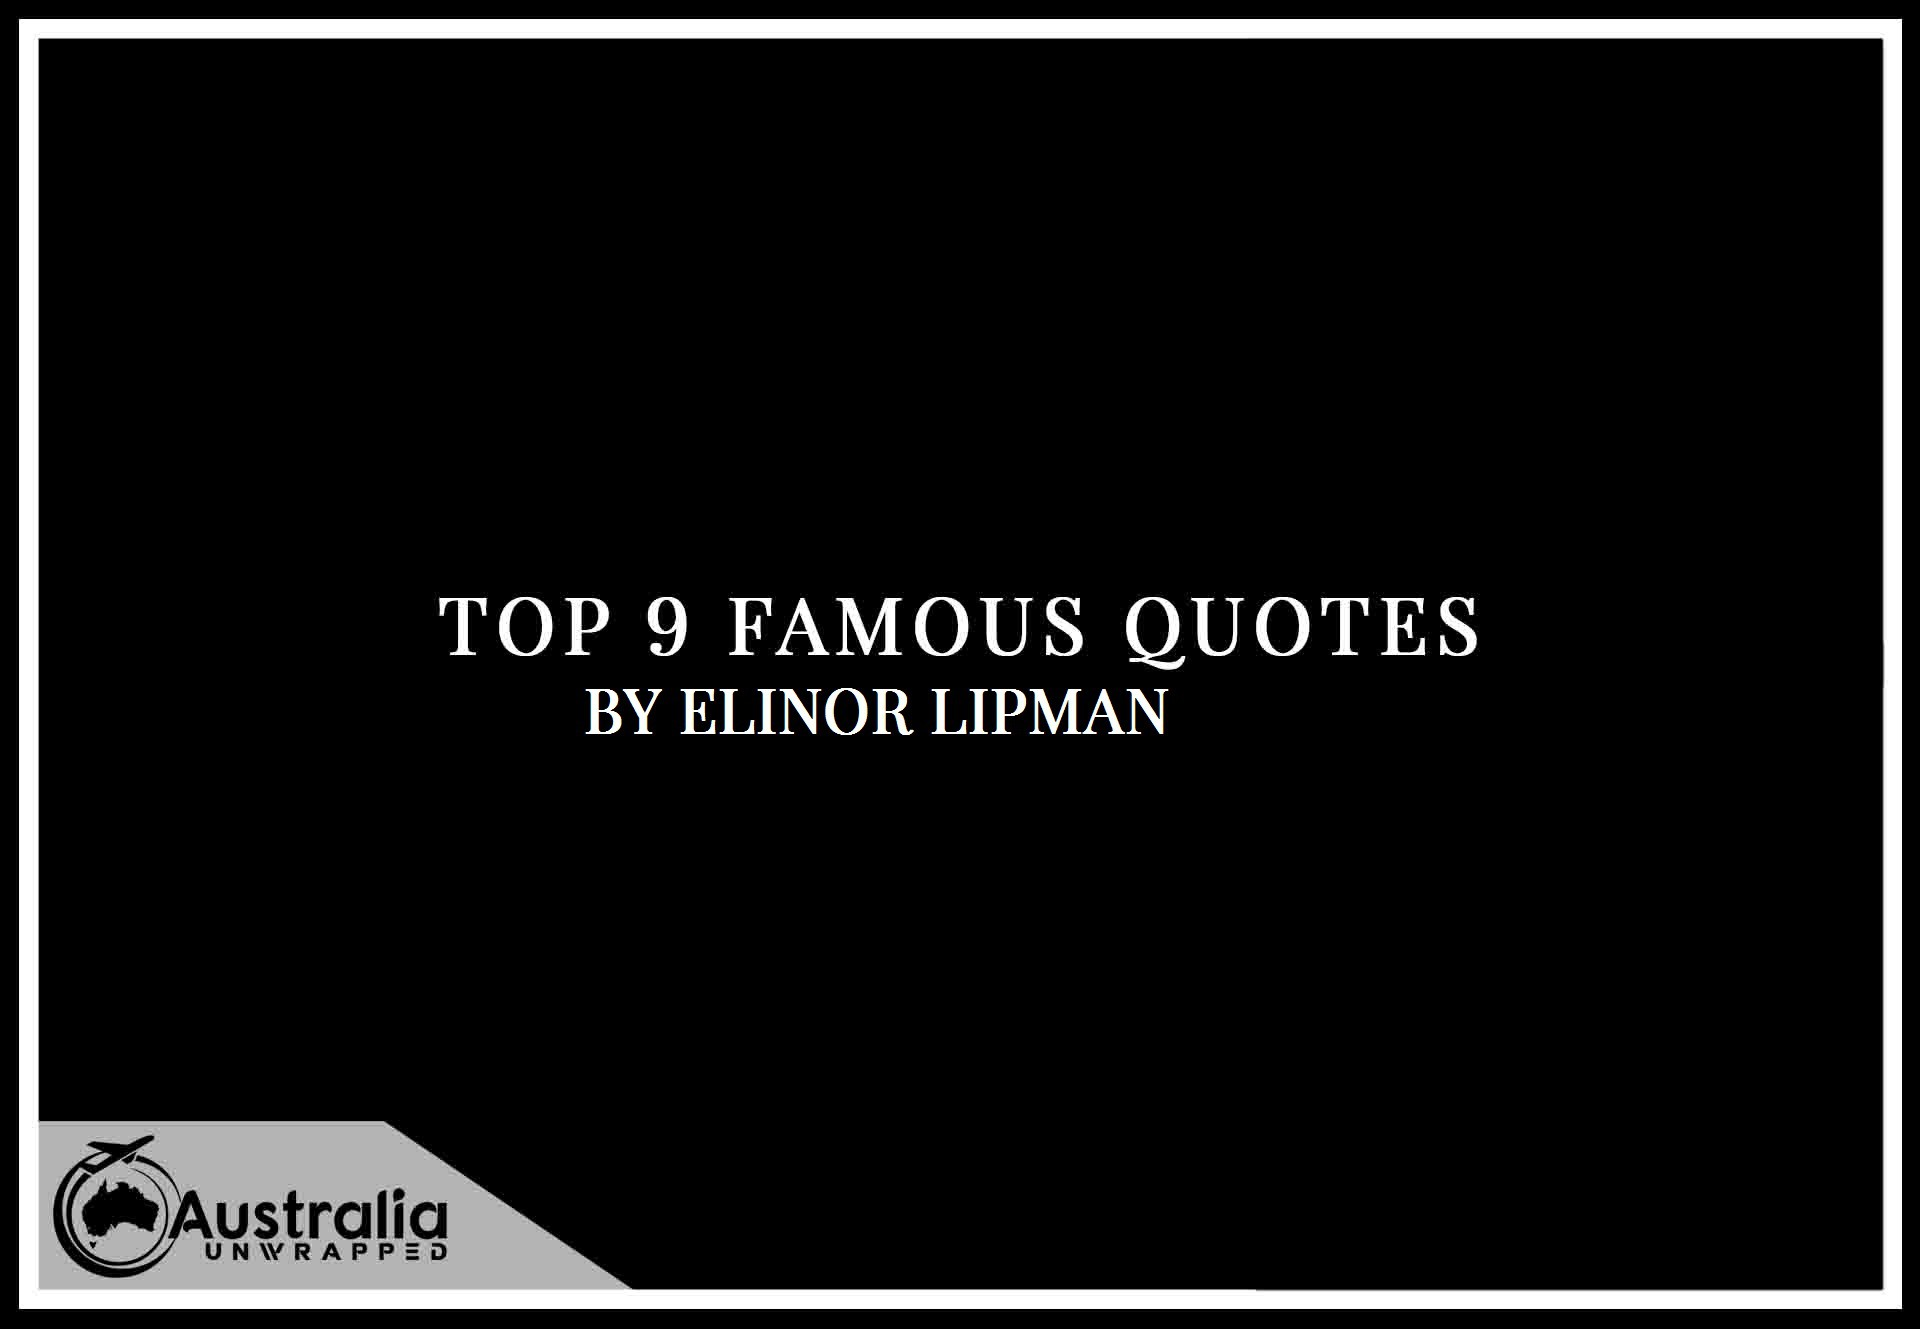 Elinor Lipman's Top 9 Popular and Famous Quotes